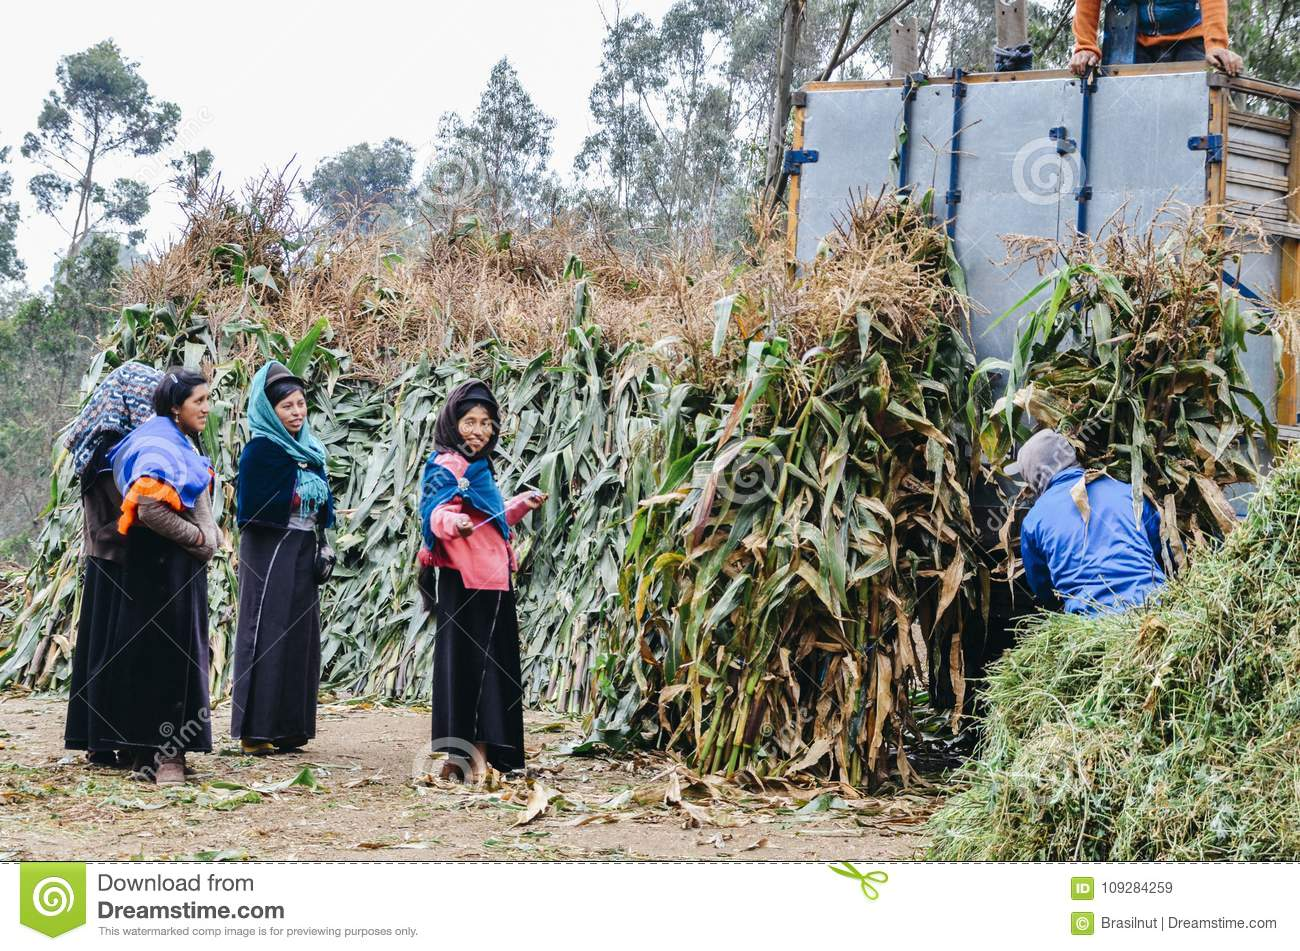 Young indigenous women collecting raw sugar cane plants from a plantation to sell in the market